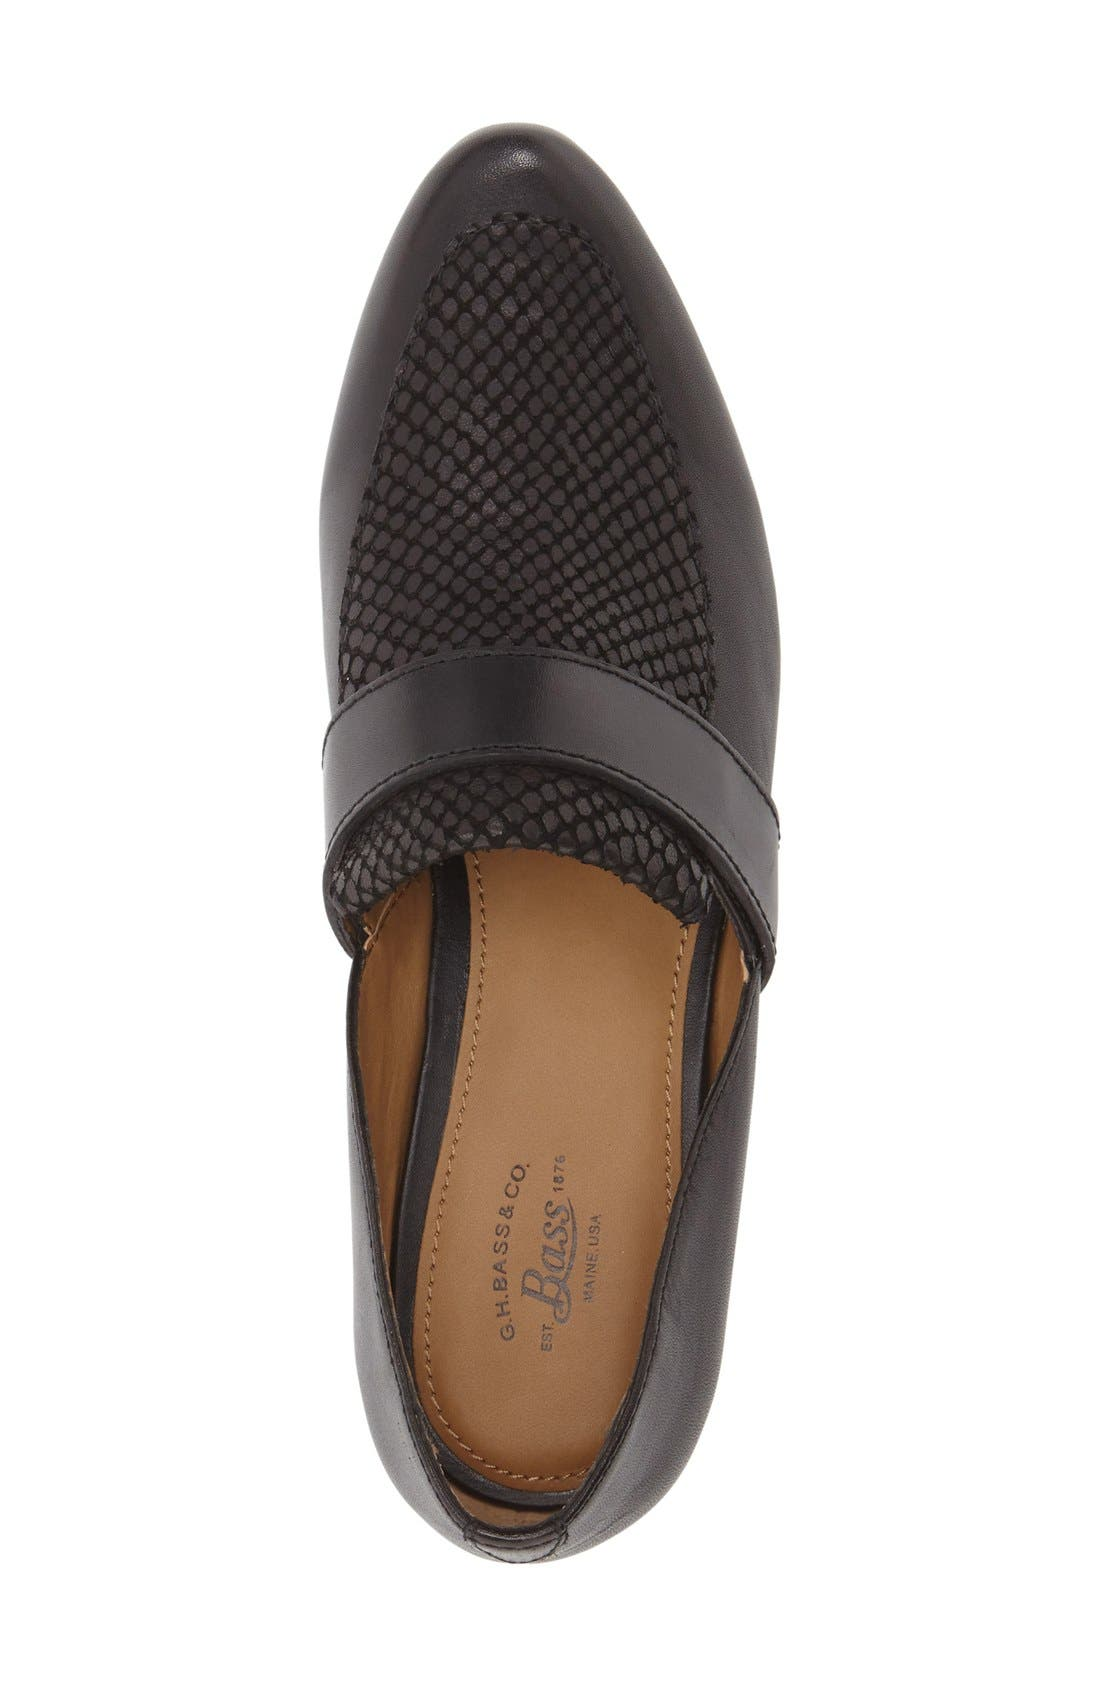 'Hilary' Leather Loafer,                             Alternate thumbnail 3, color,                             Black Leather